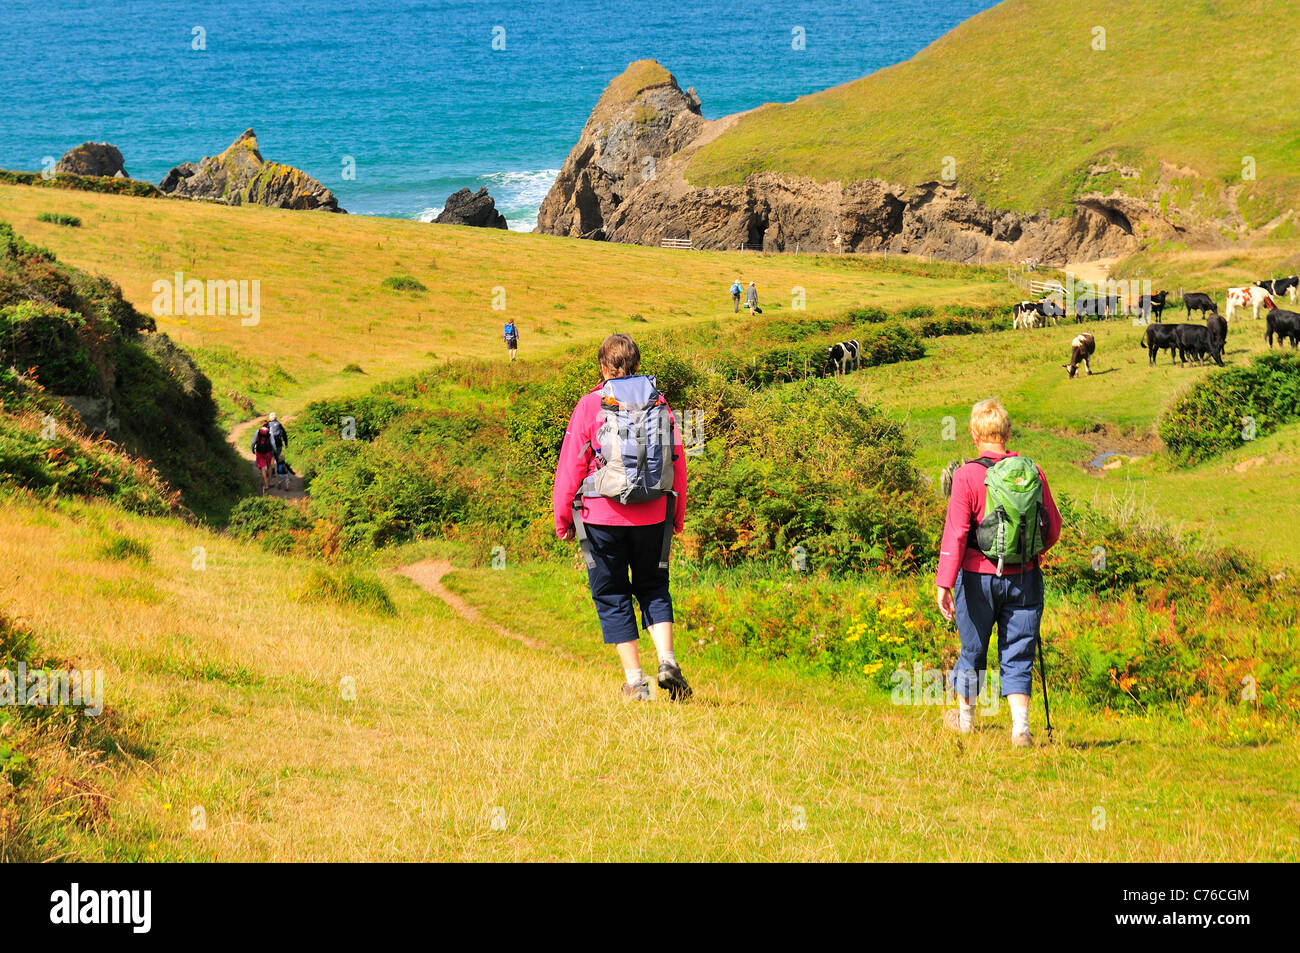 Ramblers at Soar Cove near Salcombe on the southwest coastal path - Stock Image